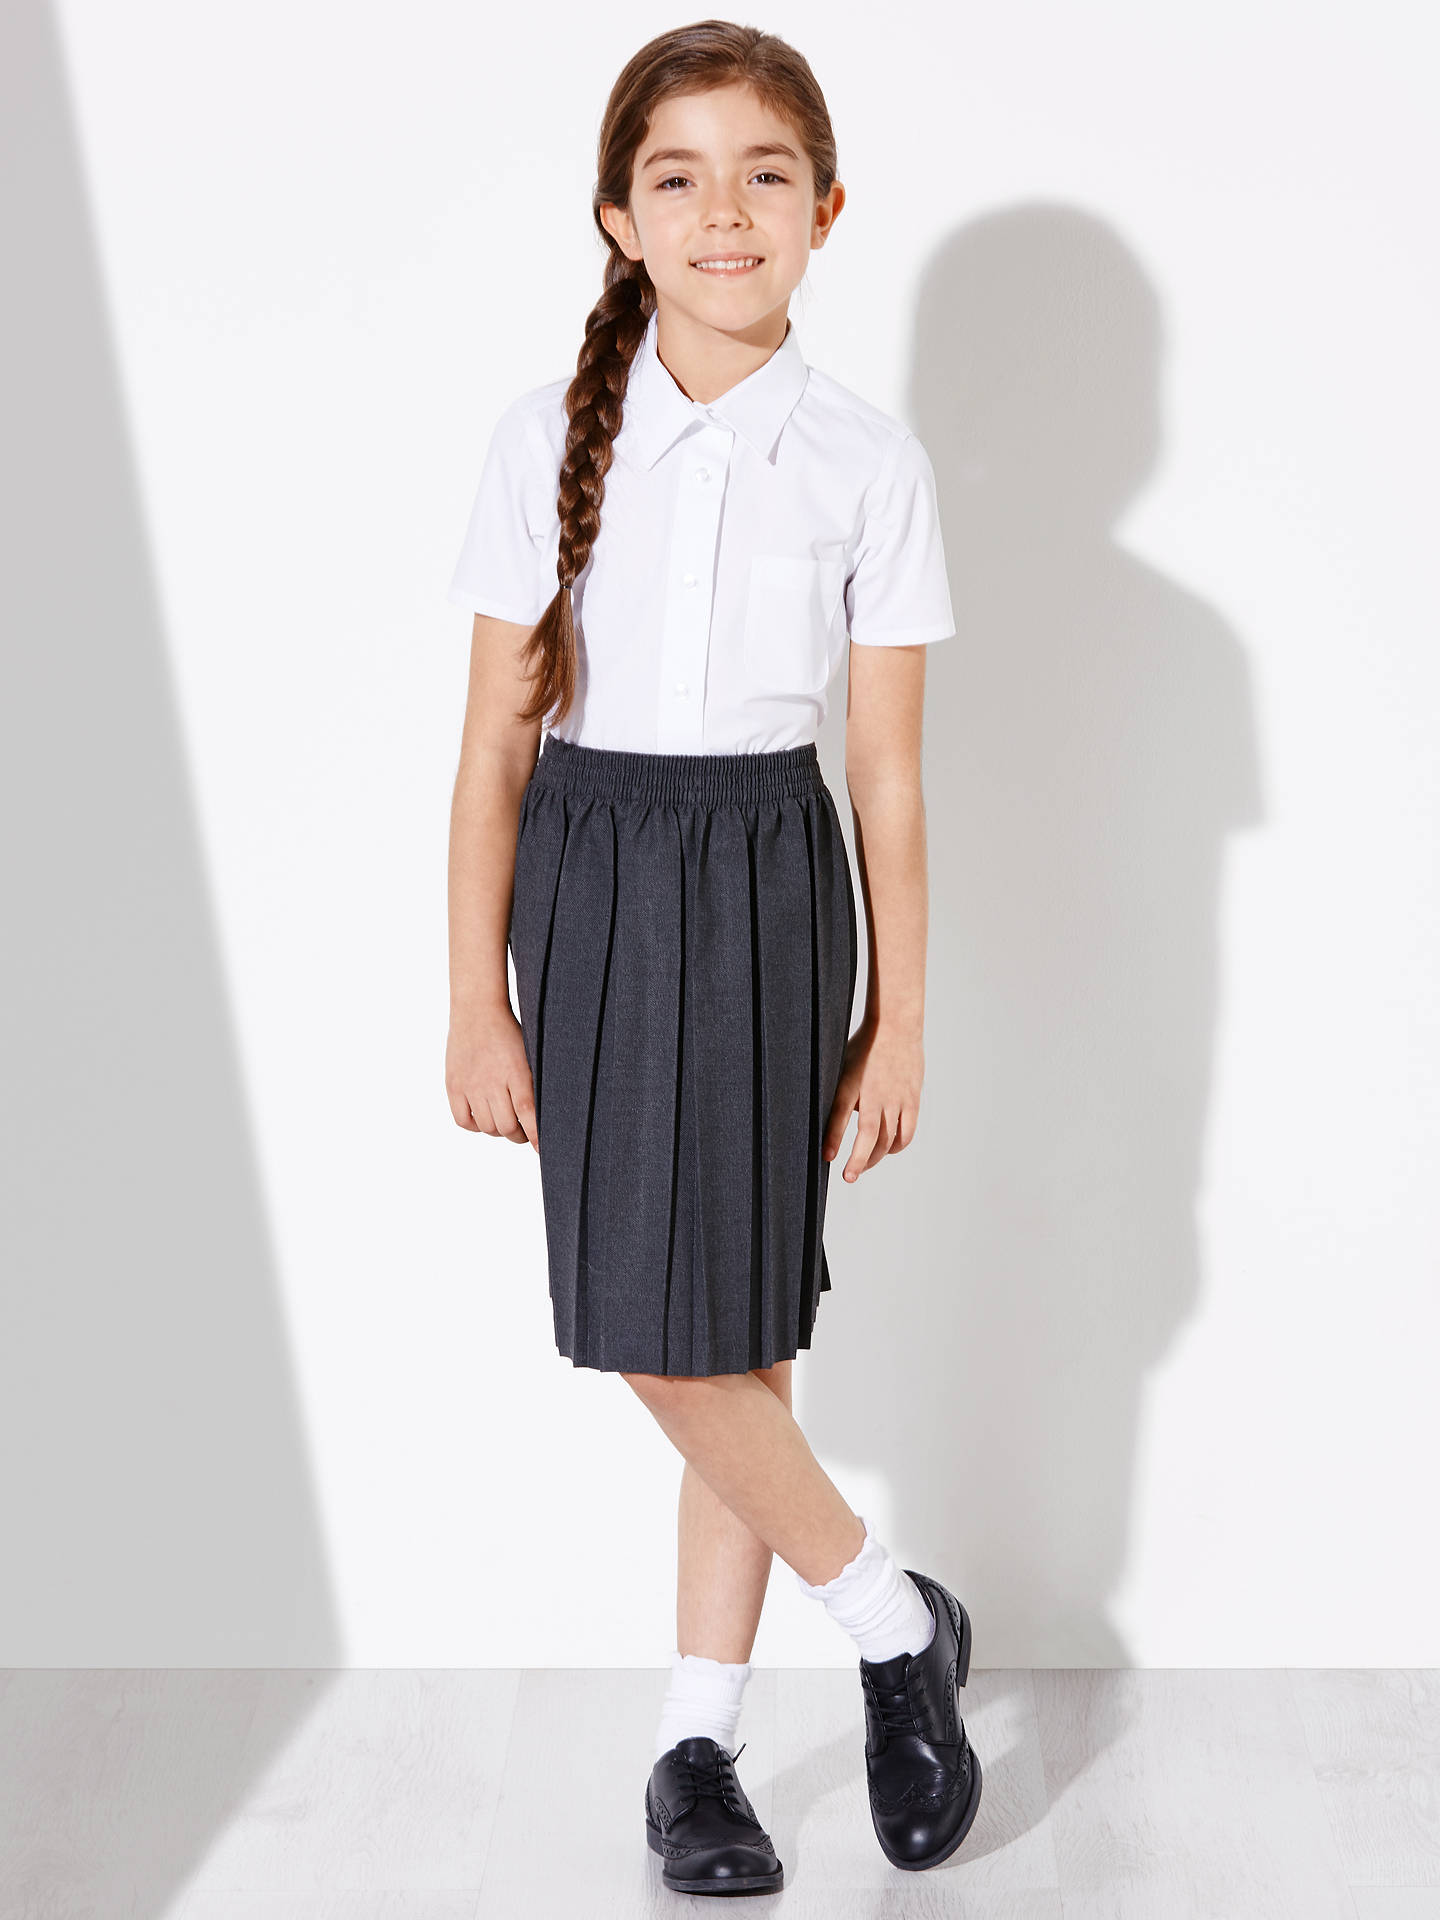 Buy John Lewis & Partners Girls' Easy Care Button Neck Short Sleeve School Blouse, Pack of 2, White, 4 years Online at johnlewis.com